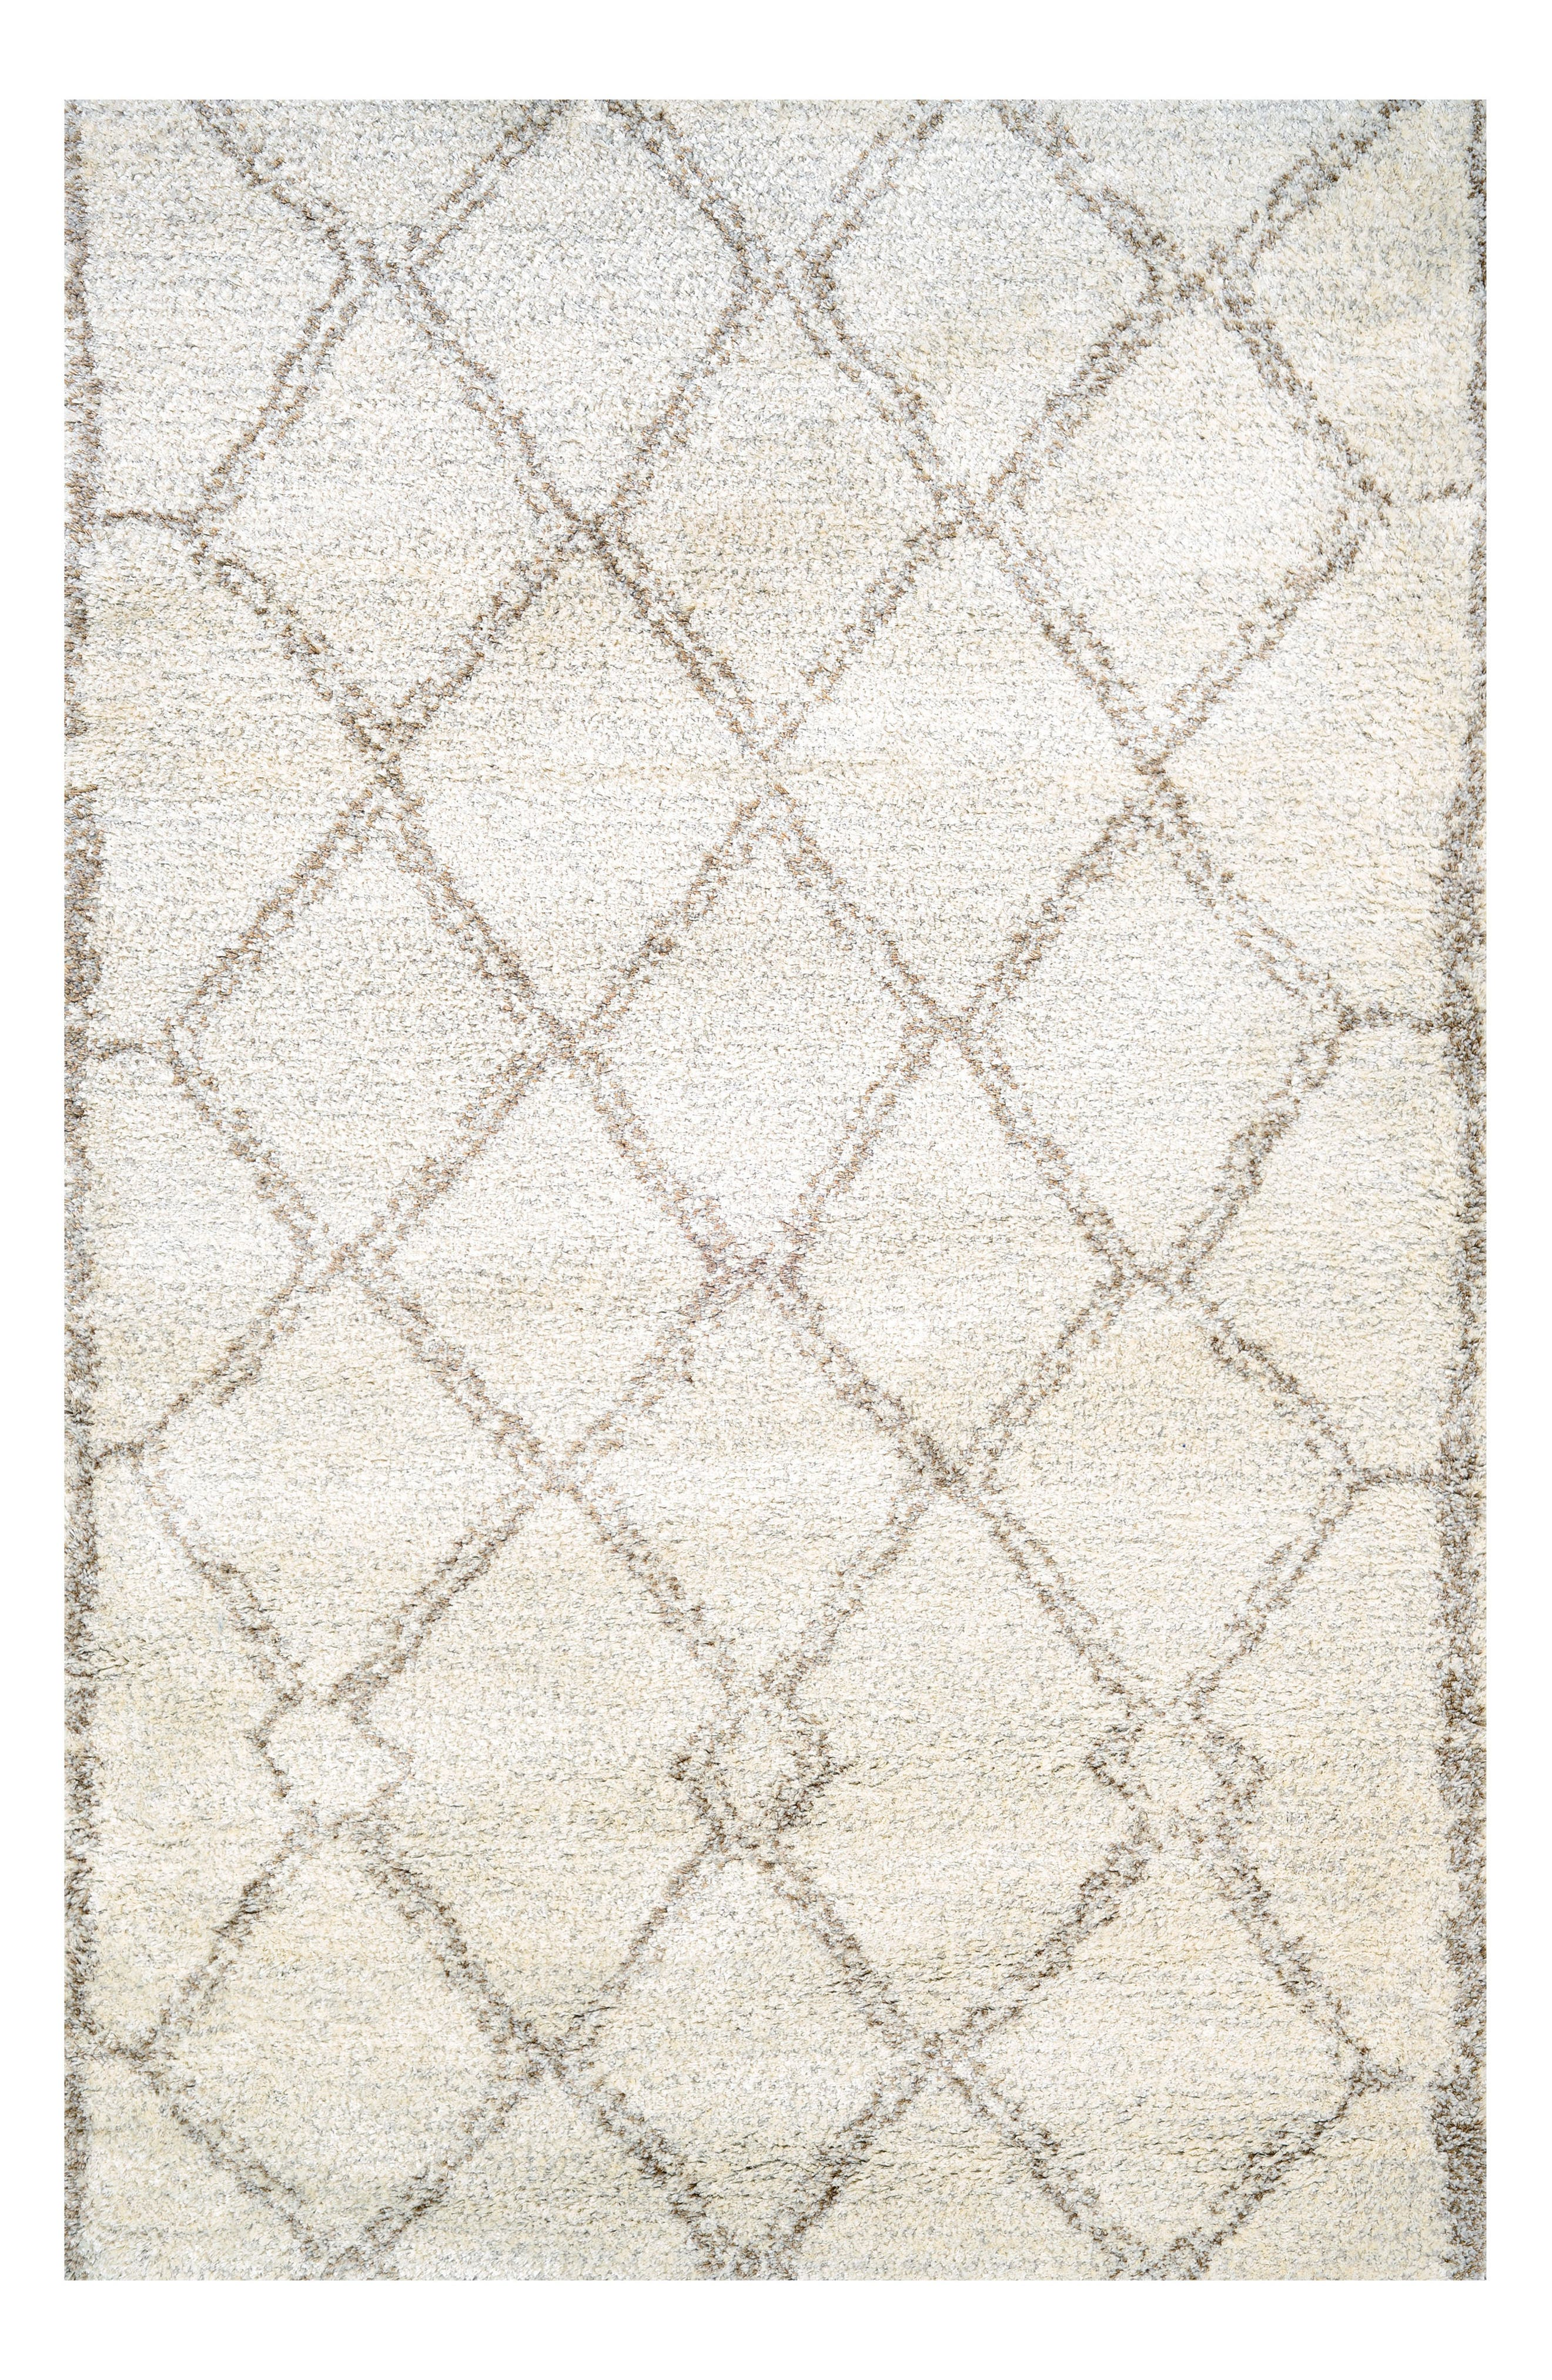 Alternate Image 1 Selected - Couristan Snowflake Area Rug